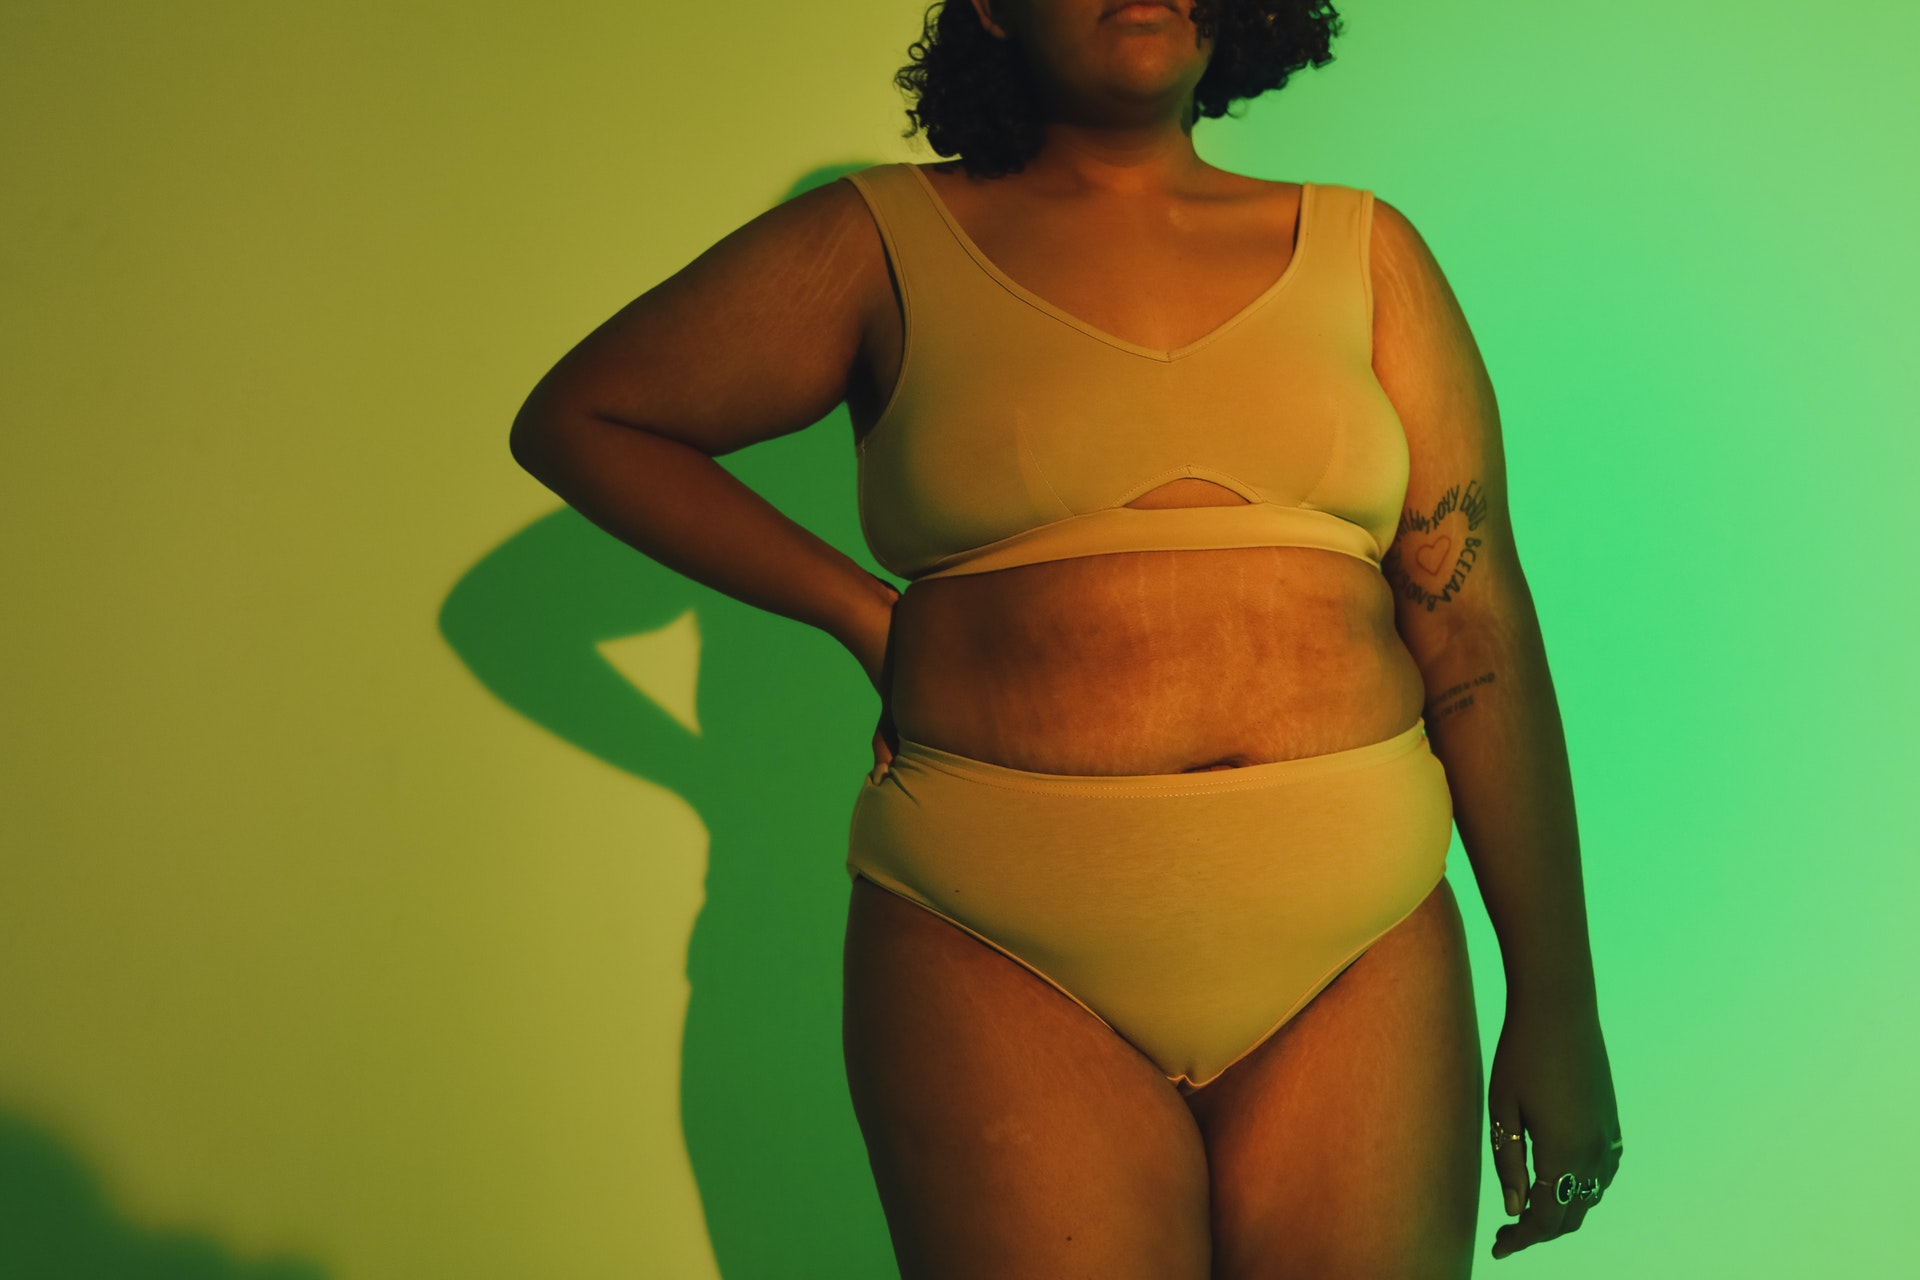 Body Shaming: The Statistics and Effects